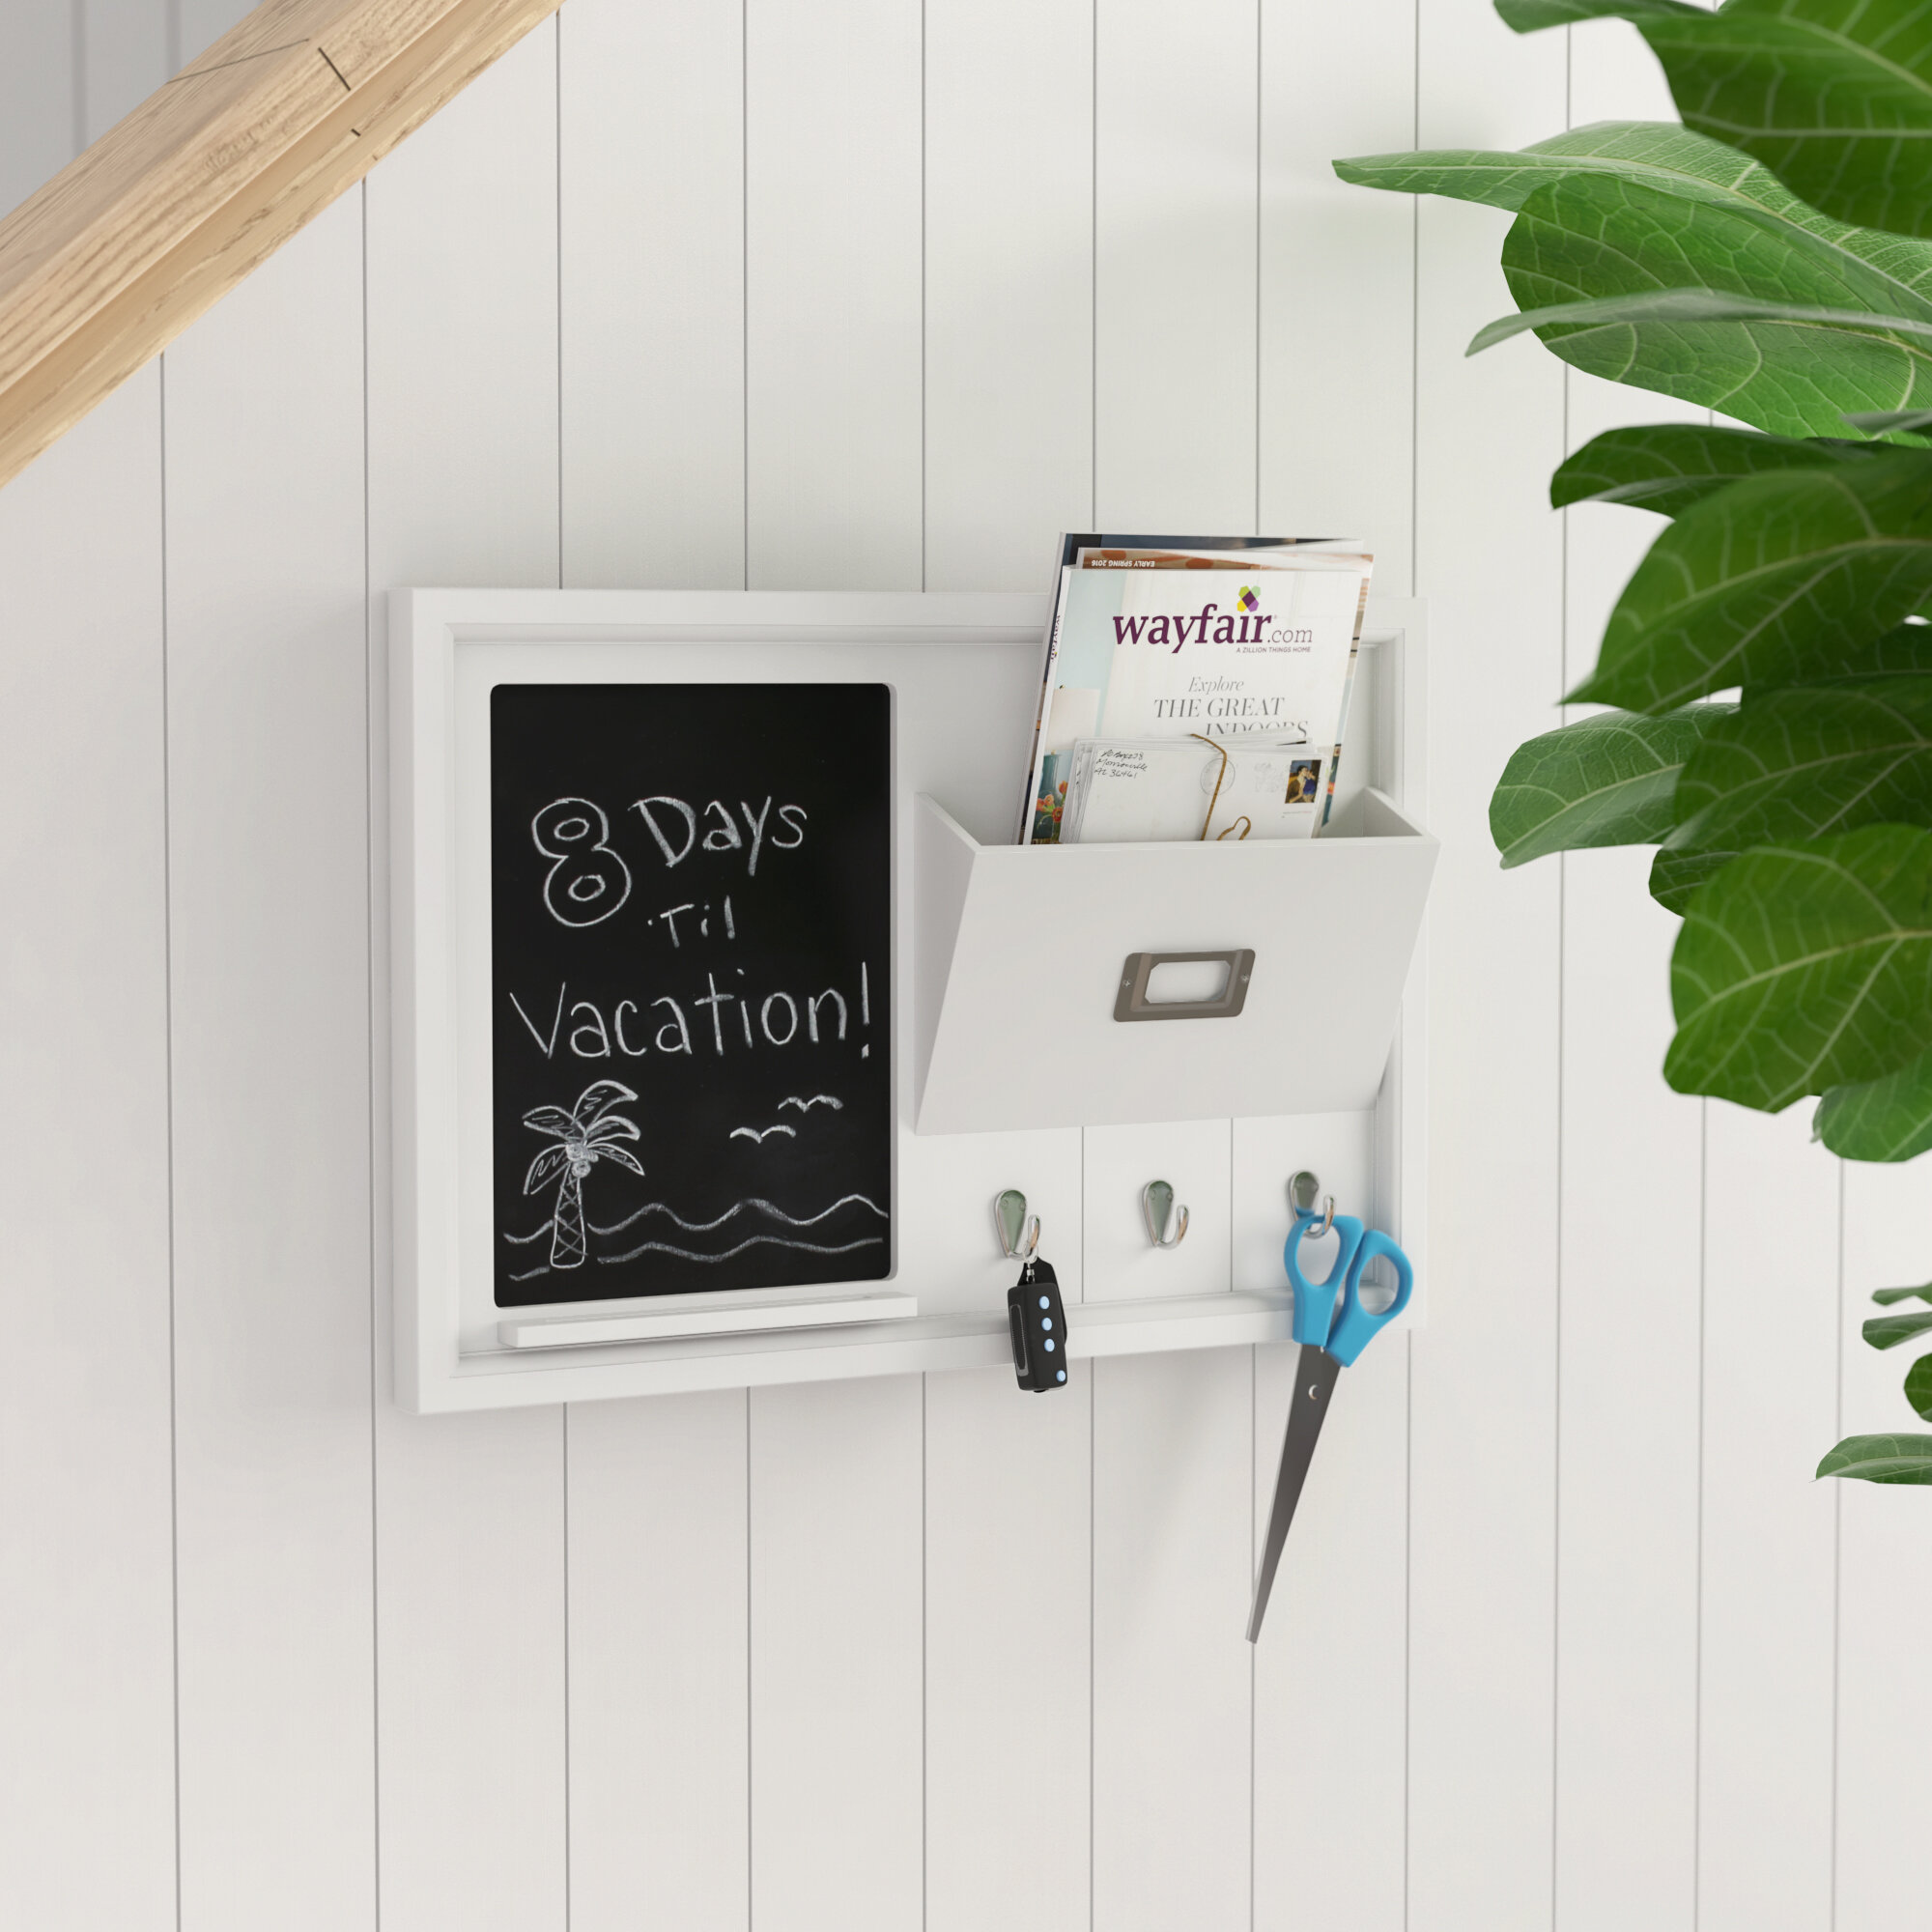 Rebrilliant organization wall mounted chalkboard reviews wayfair jeuxipadfo Gallery